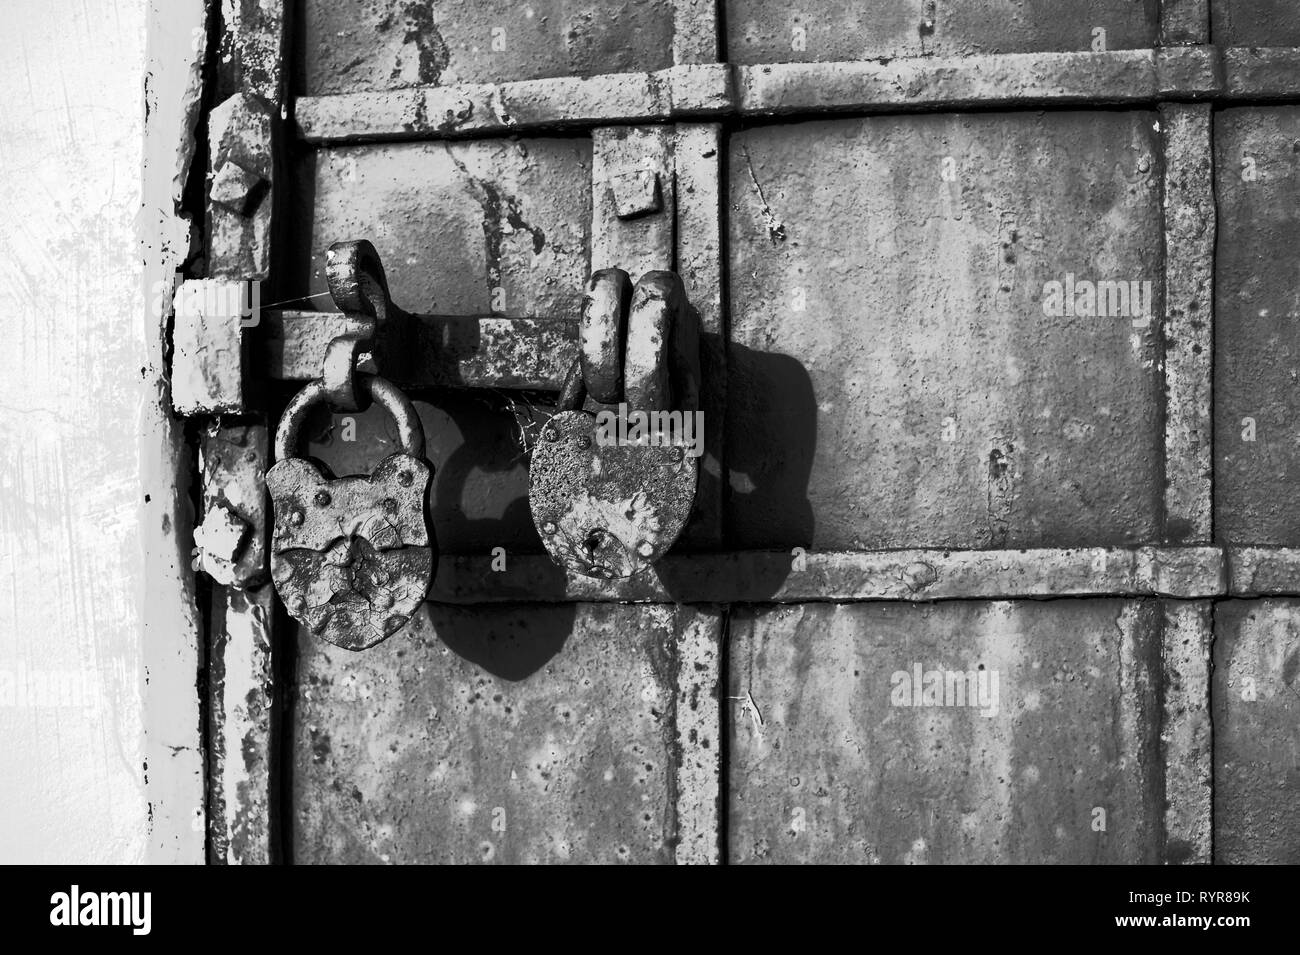 Part of a chained gate with a gate valve and two locks of an old historic building. Black and white background, retro, vintage. - Stock Image